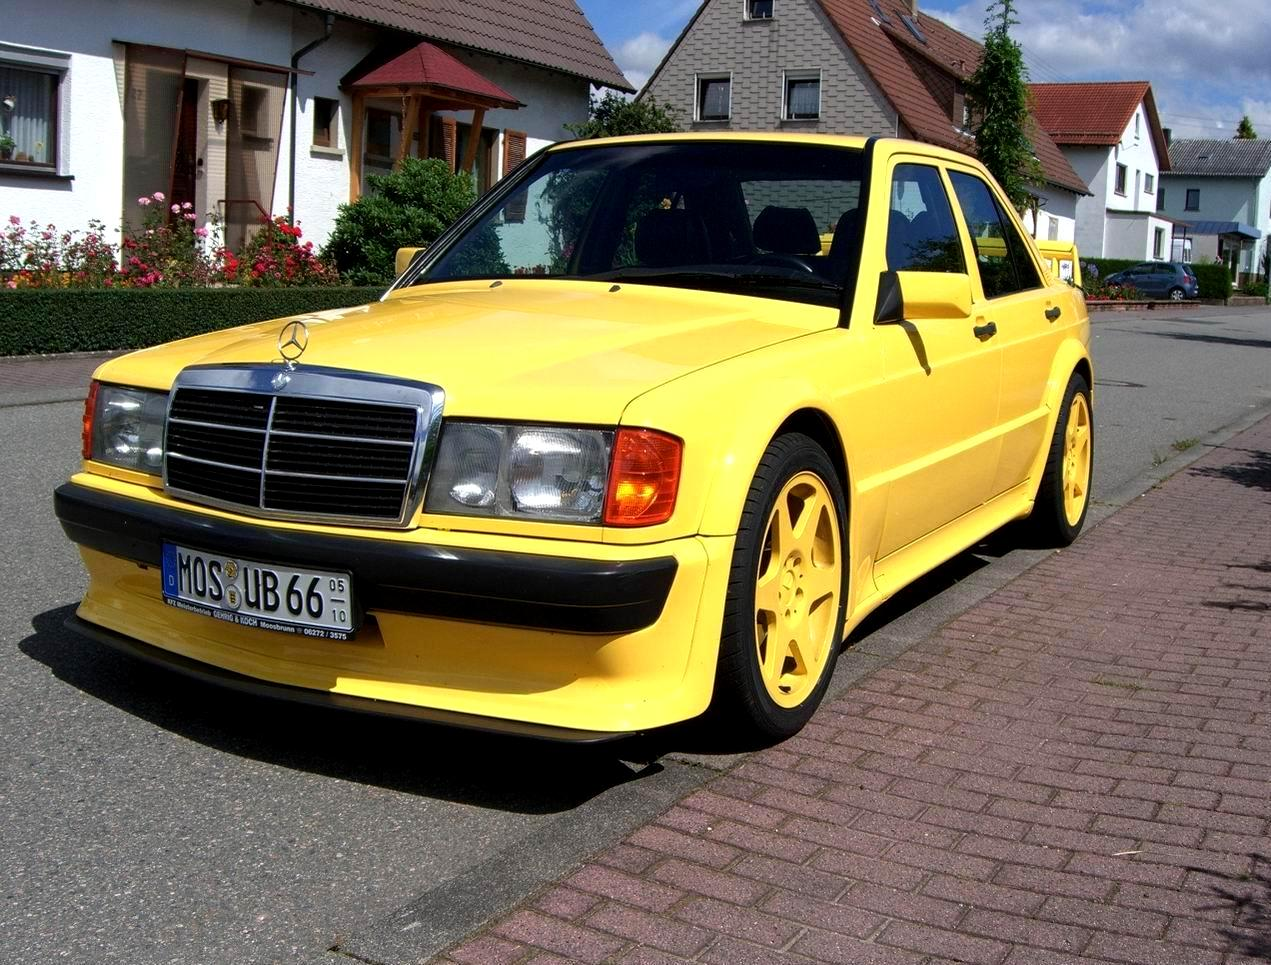 Mercedes_190e_evolution_yellow_1.jpg